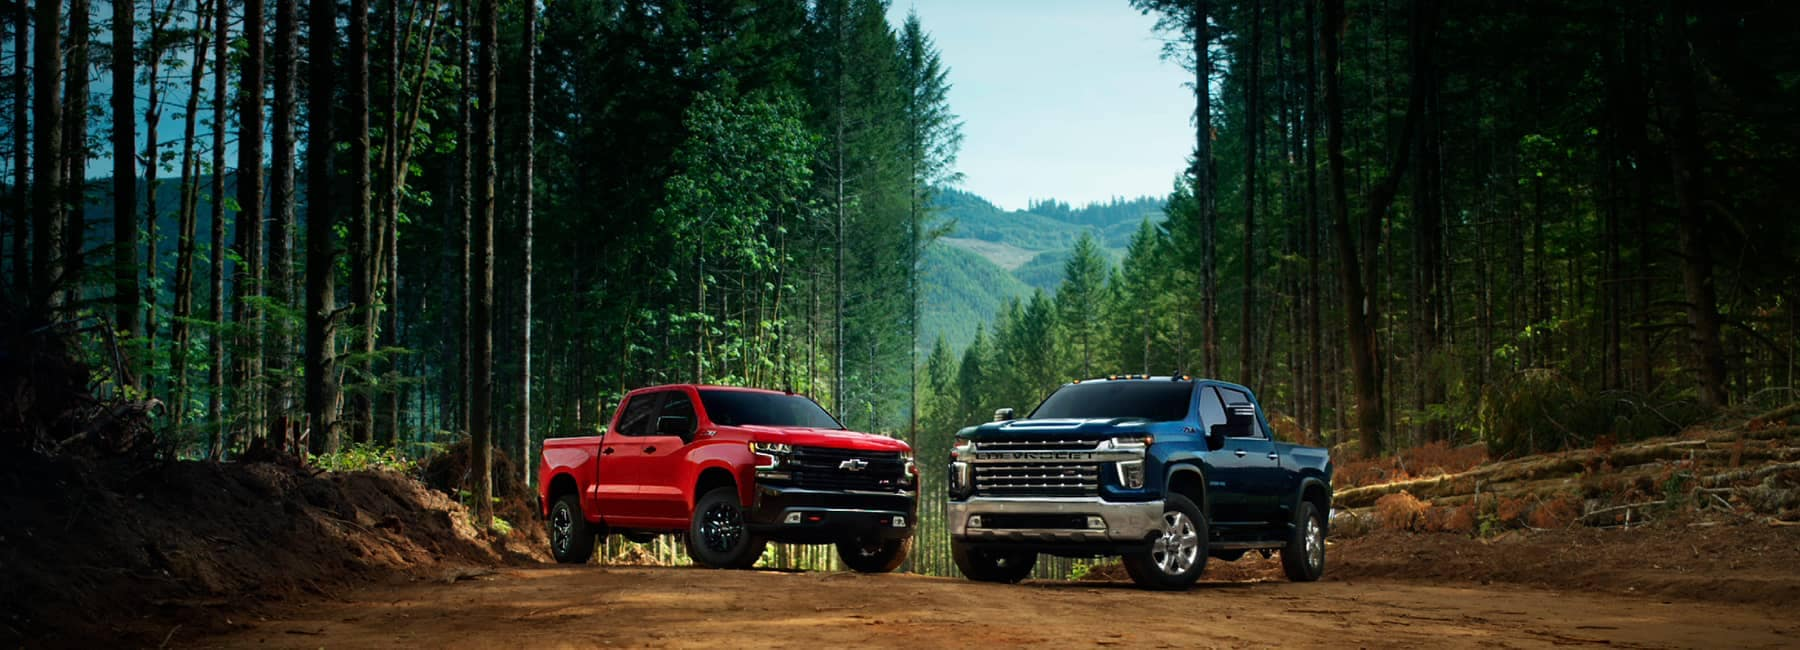 2021 Chevrolet Silverado Lineup - A Red and a Blue Chevrolet Silverado in a wooded area facing the camera